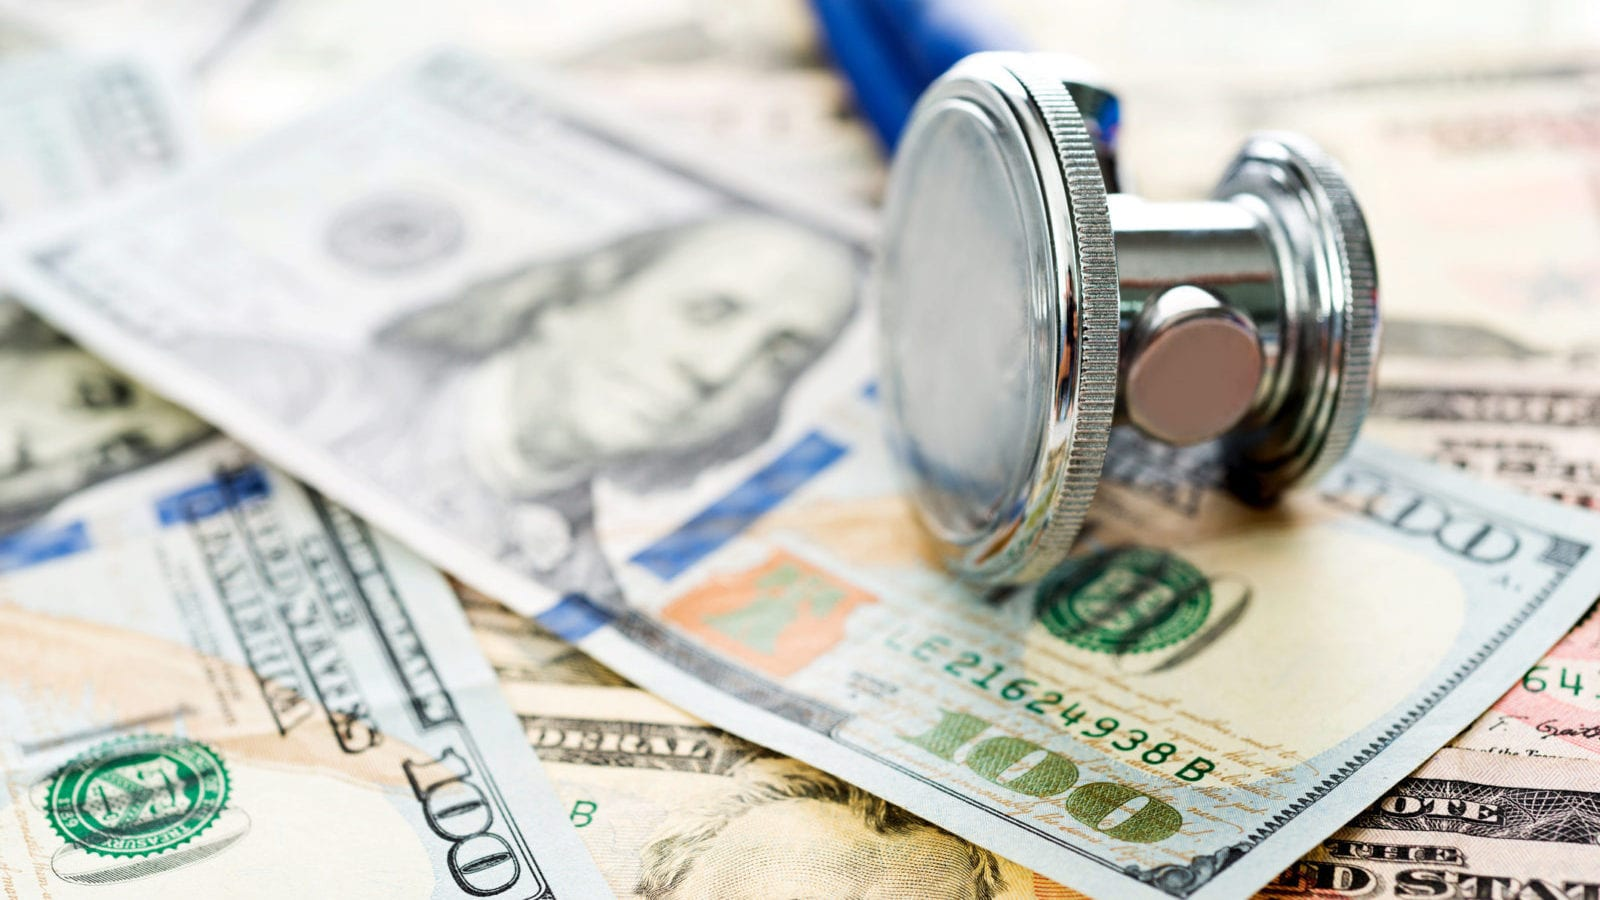 Stethoscope and Dollar Bills Stock Photo